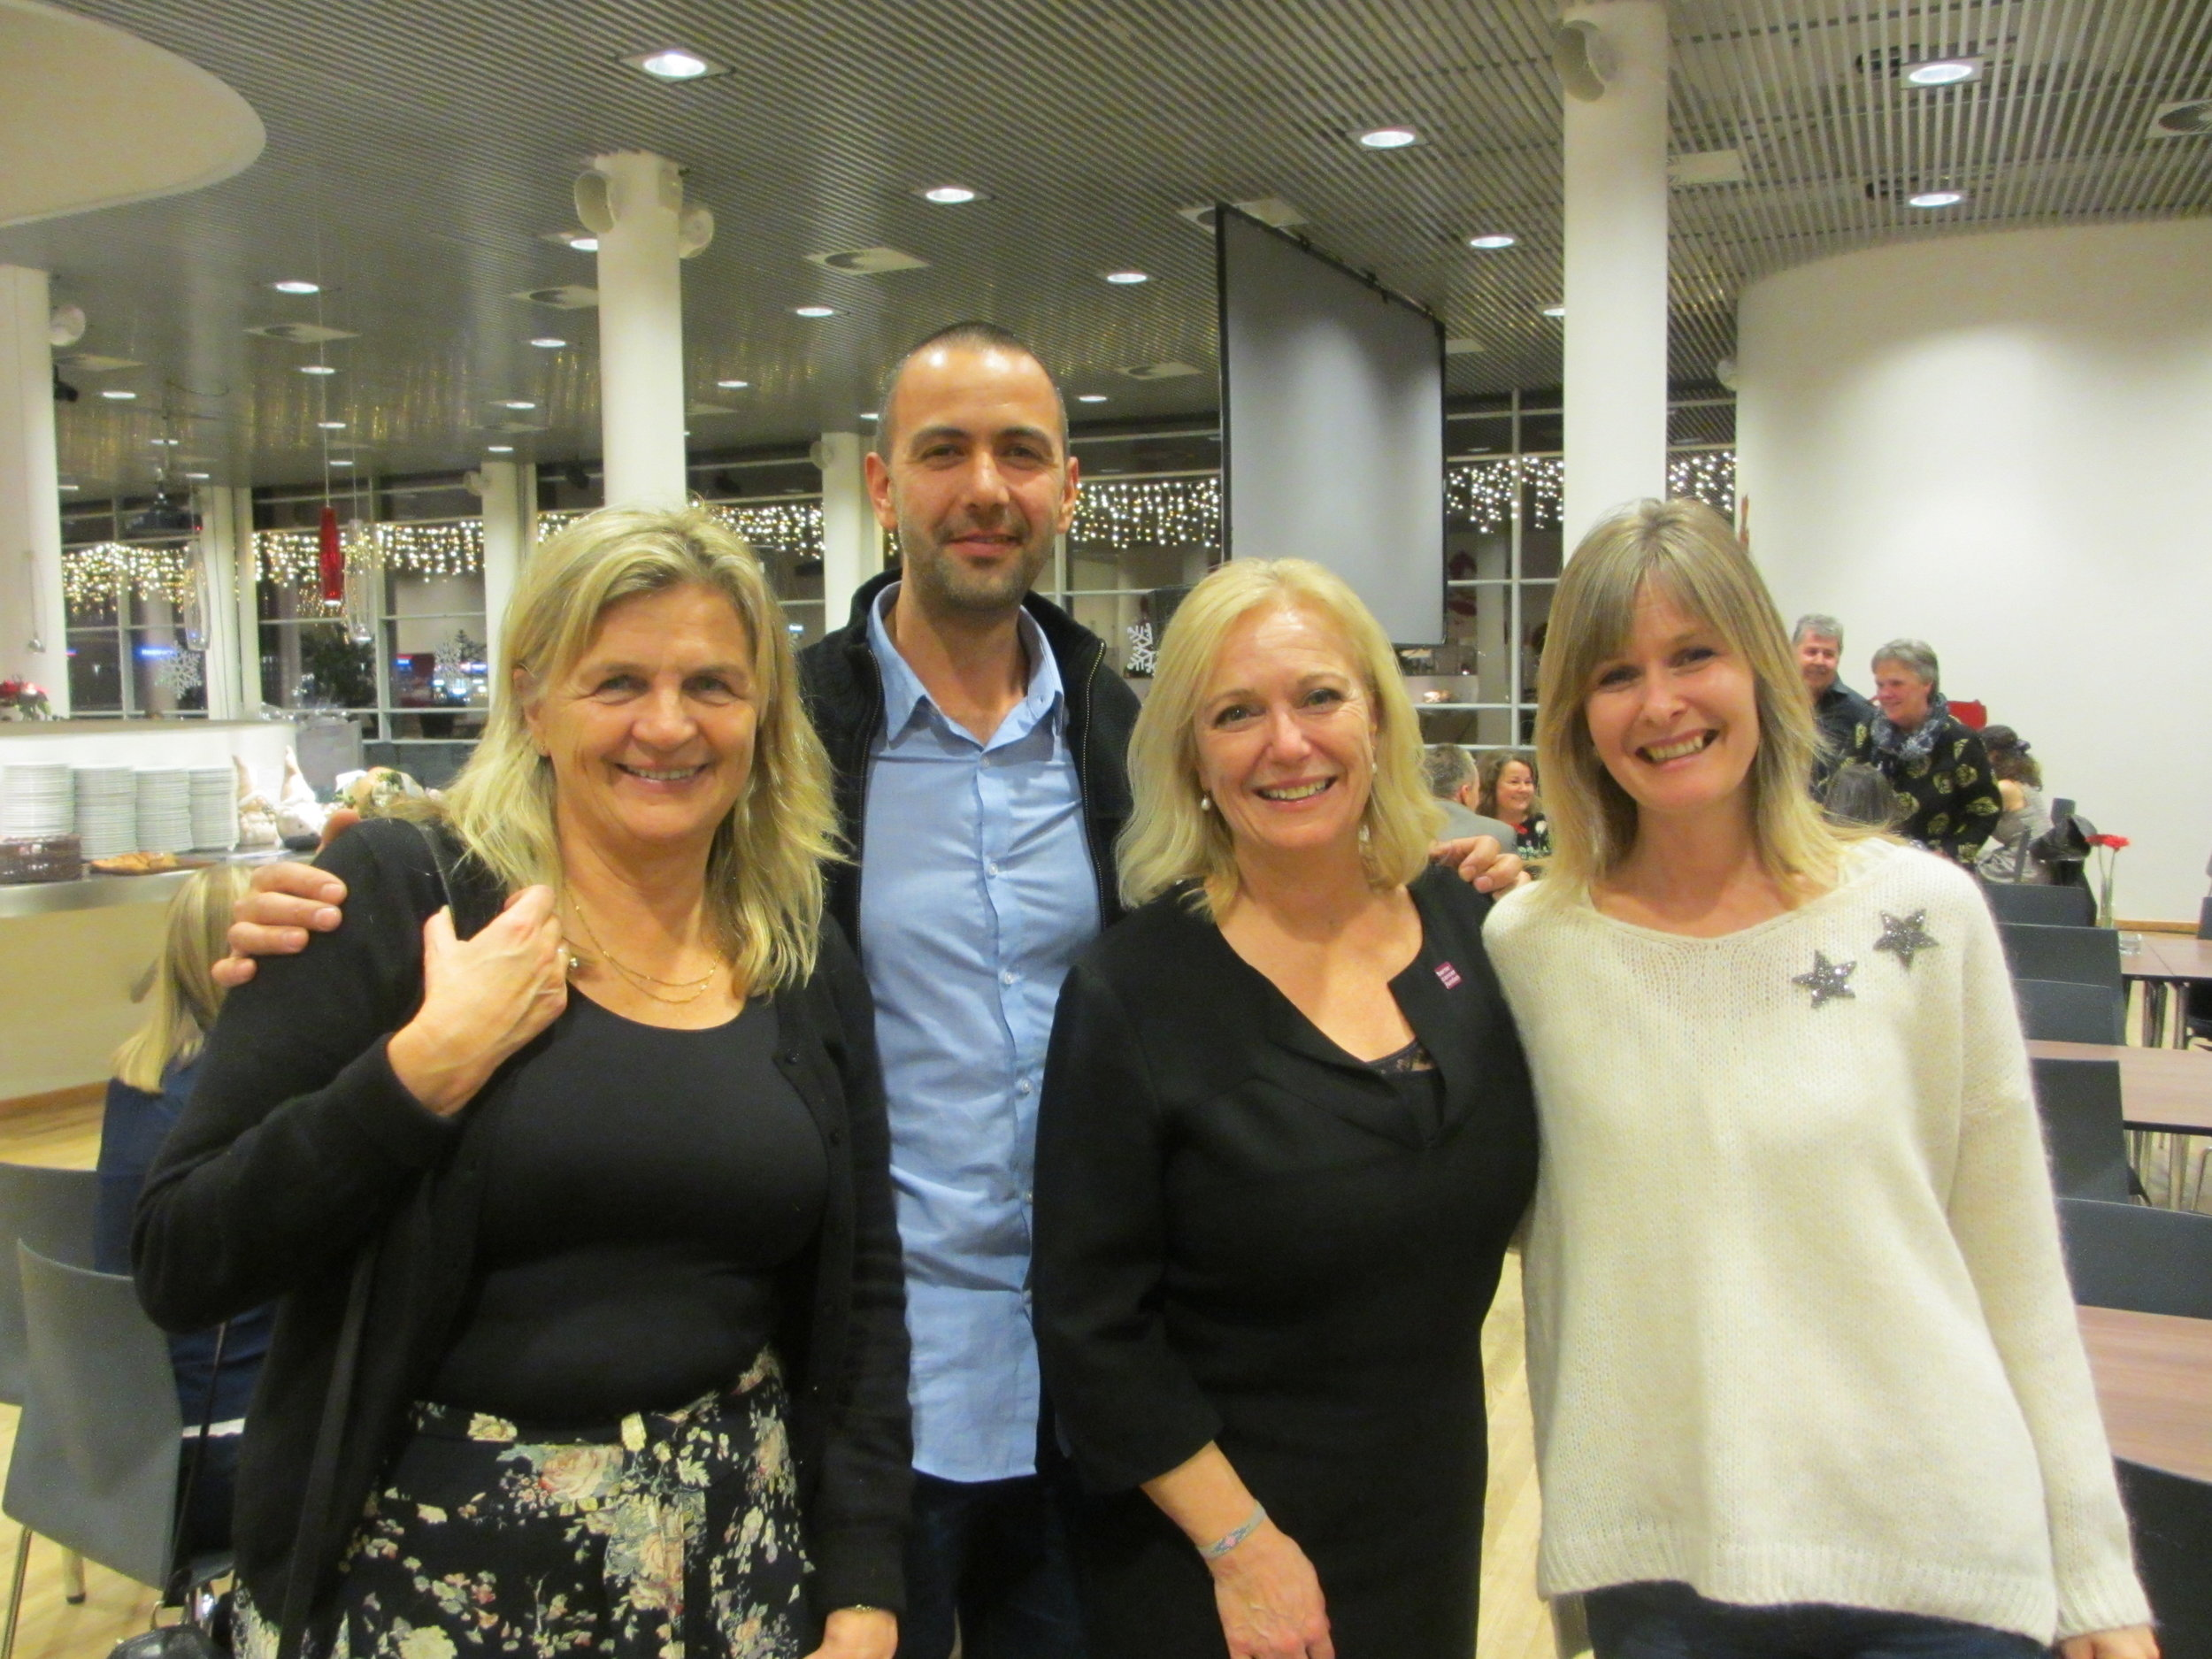 At the Danish Børnecancerfonden´s (BCF) Special Award Show, November 2017. From left to right: Kirsten Holm (Chairman of the board, BFC), Ilan Sanfi (Primary investigator), Marinna Benzon Nielsen (Managing Director) and Catharina Messell, (MICO Music Therapist at Rigshospitalet, Copenhagen).